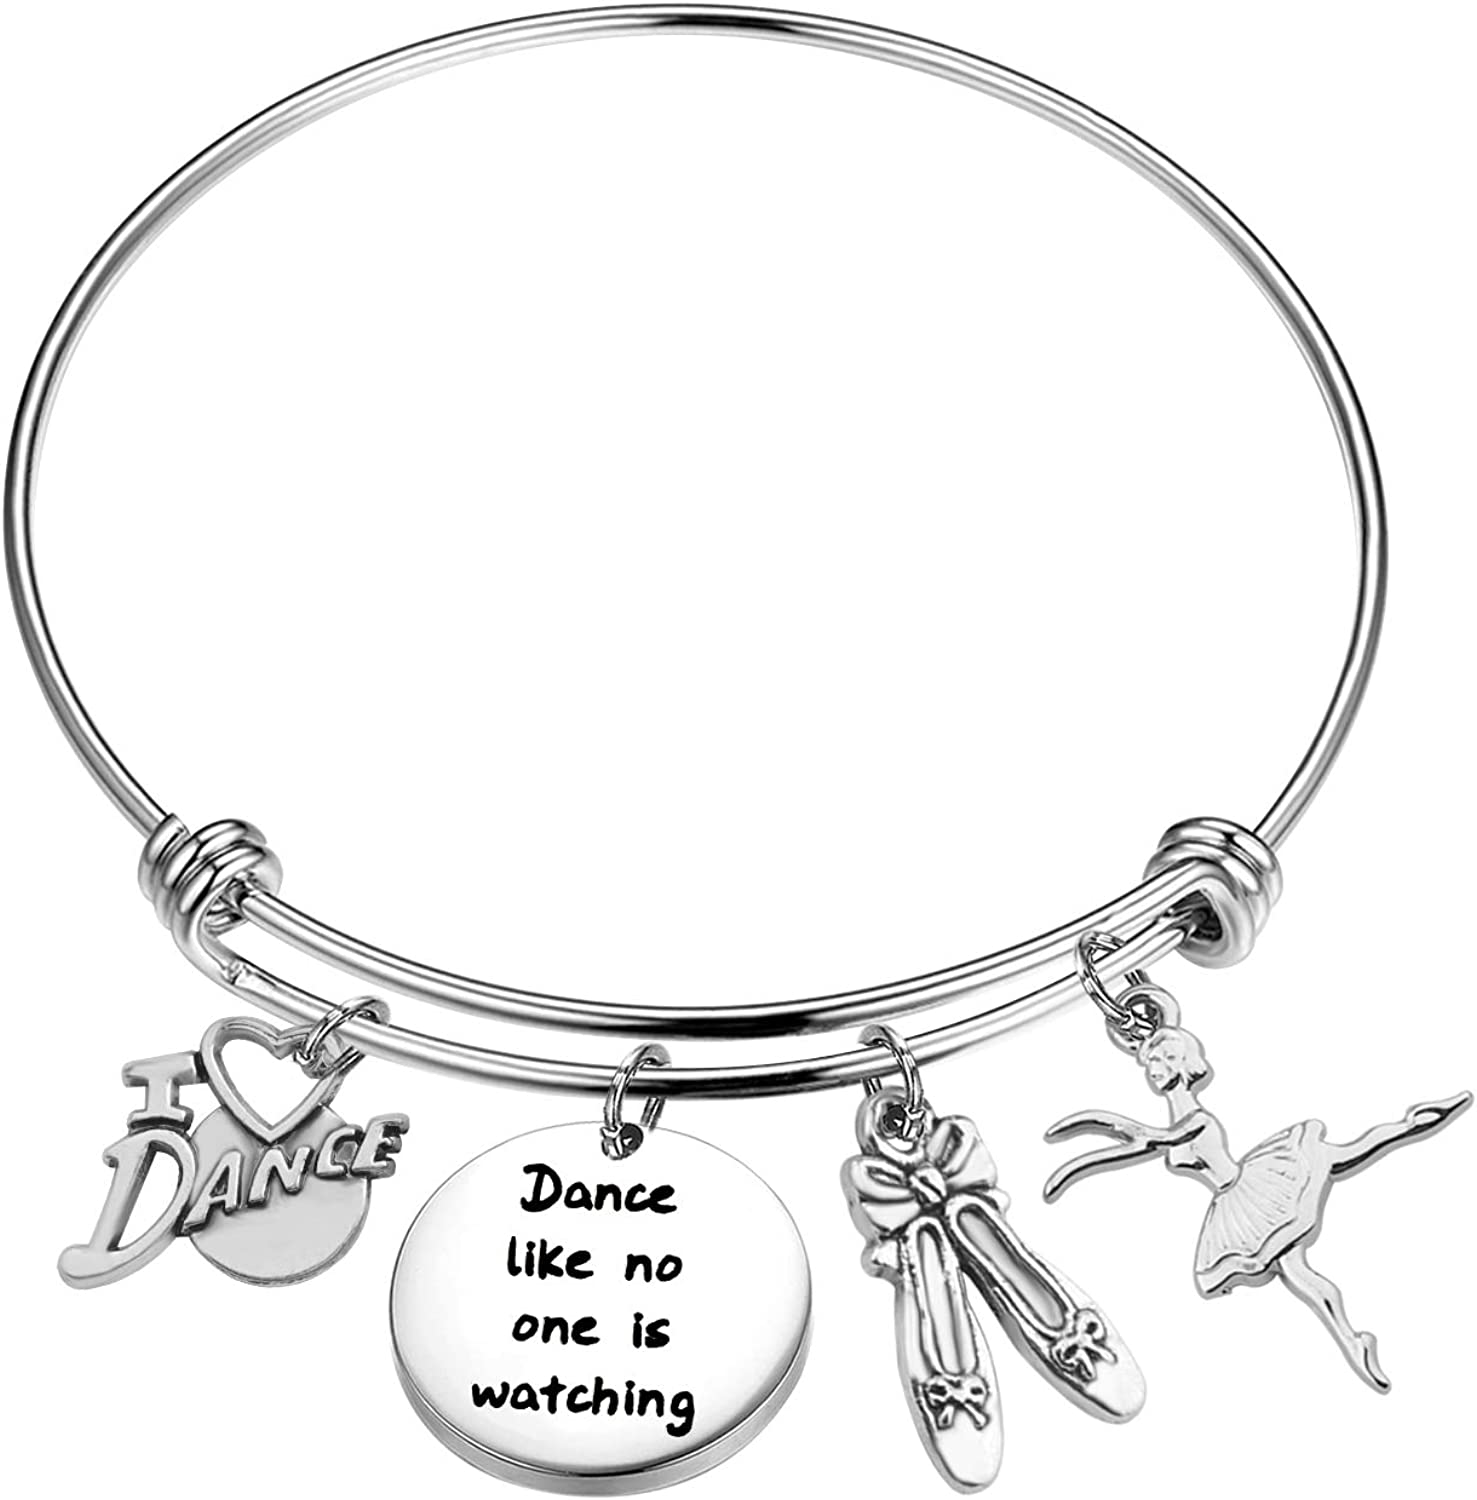 bobauna Dance Like No One is Watching Bracelet I Love Dance Bracelet Dance Jewelry Gift for Dancer